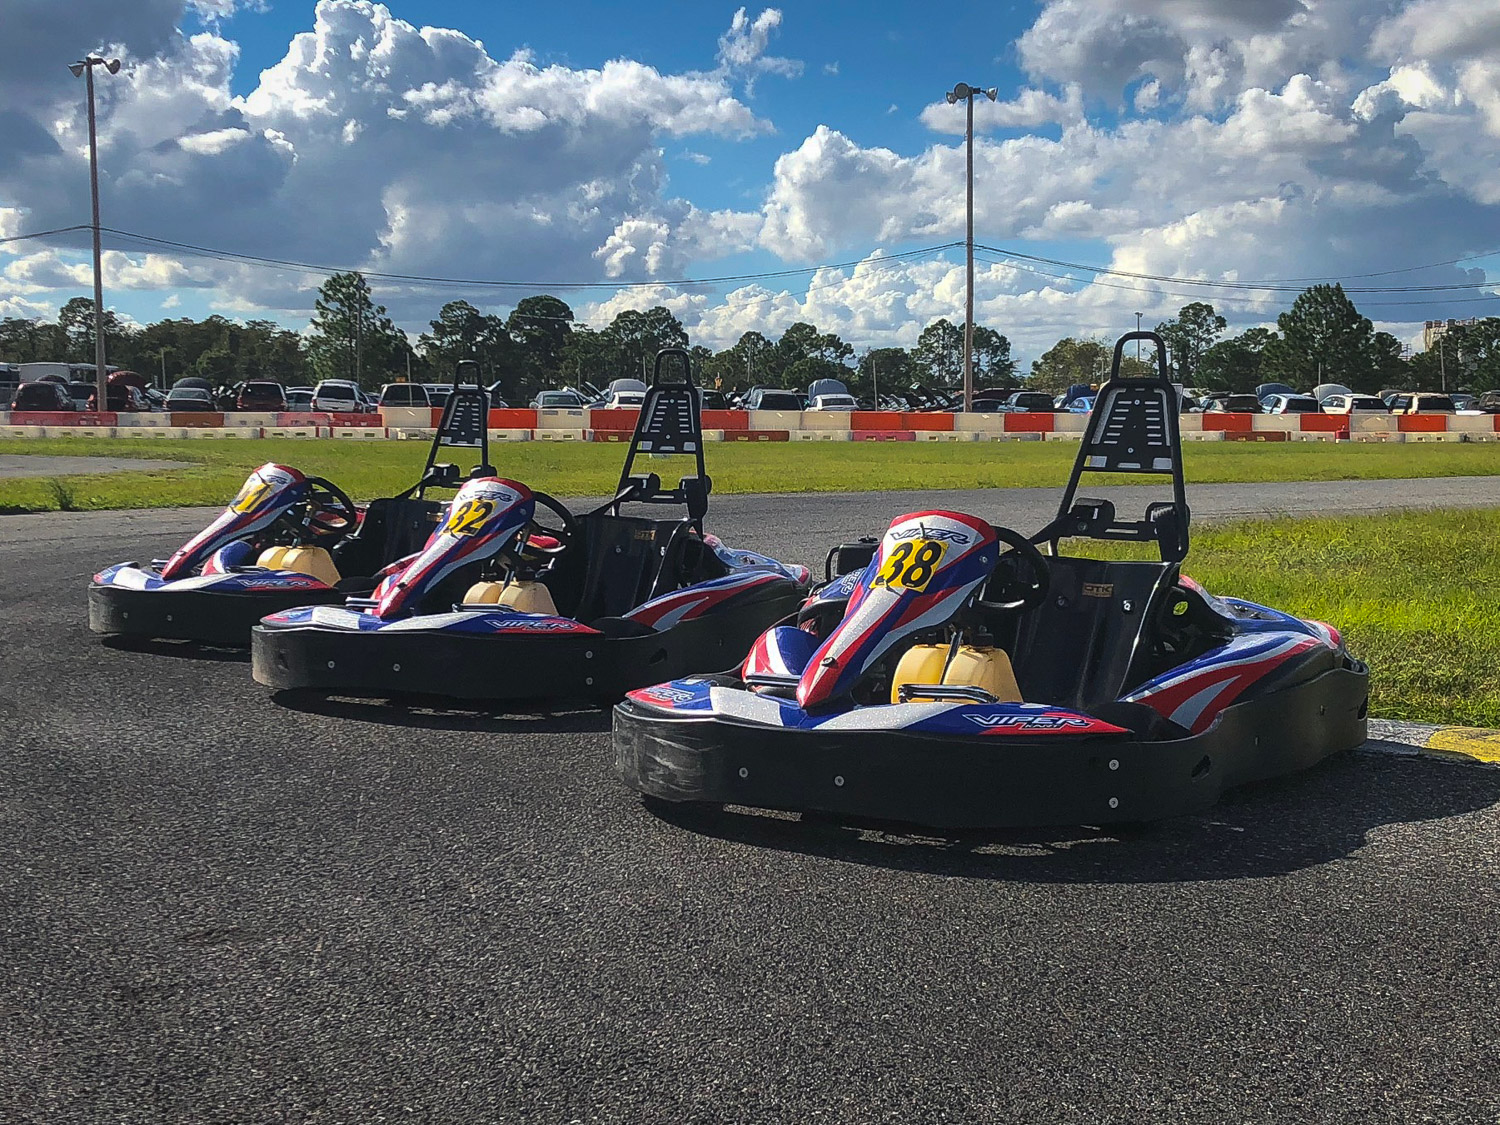 The Fastest Go Karts Orlando FL - Best Fun Racing Track